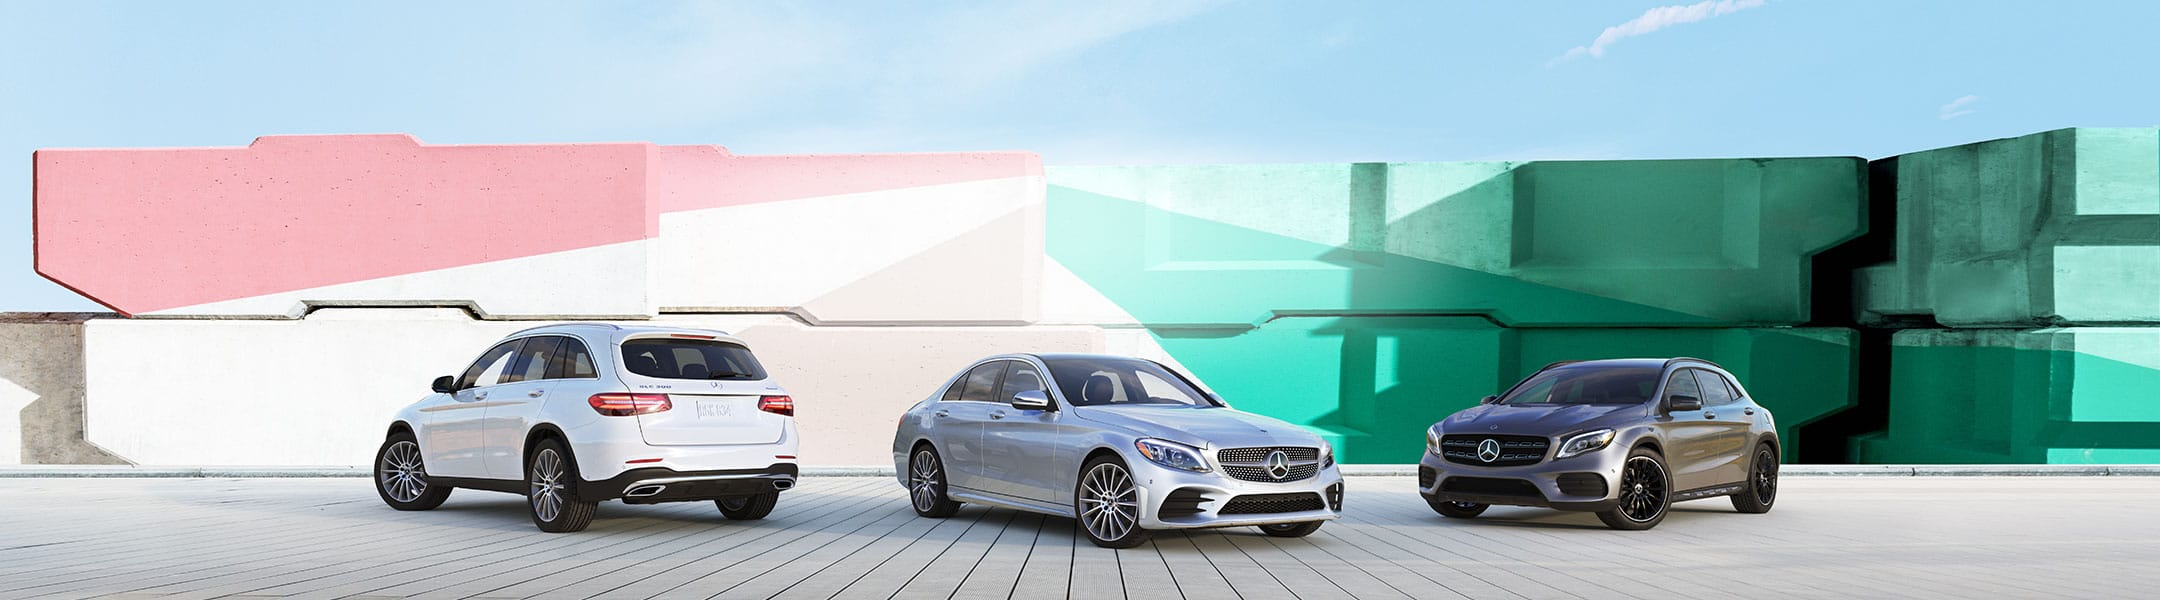 Three new Mercedes-Benz vehicles sit parked in front of a bright, multi-colored mural.